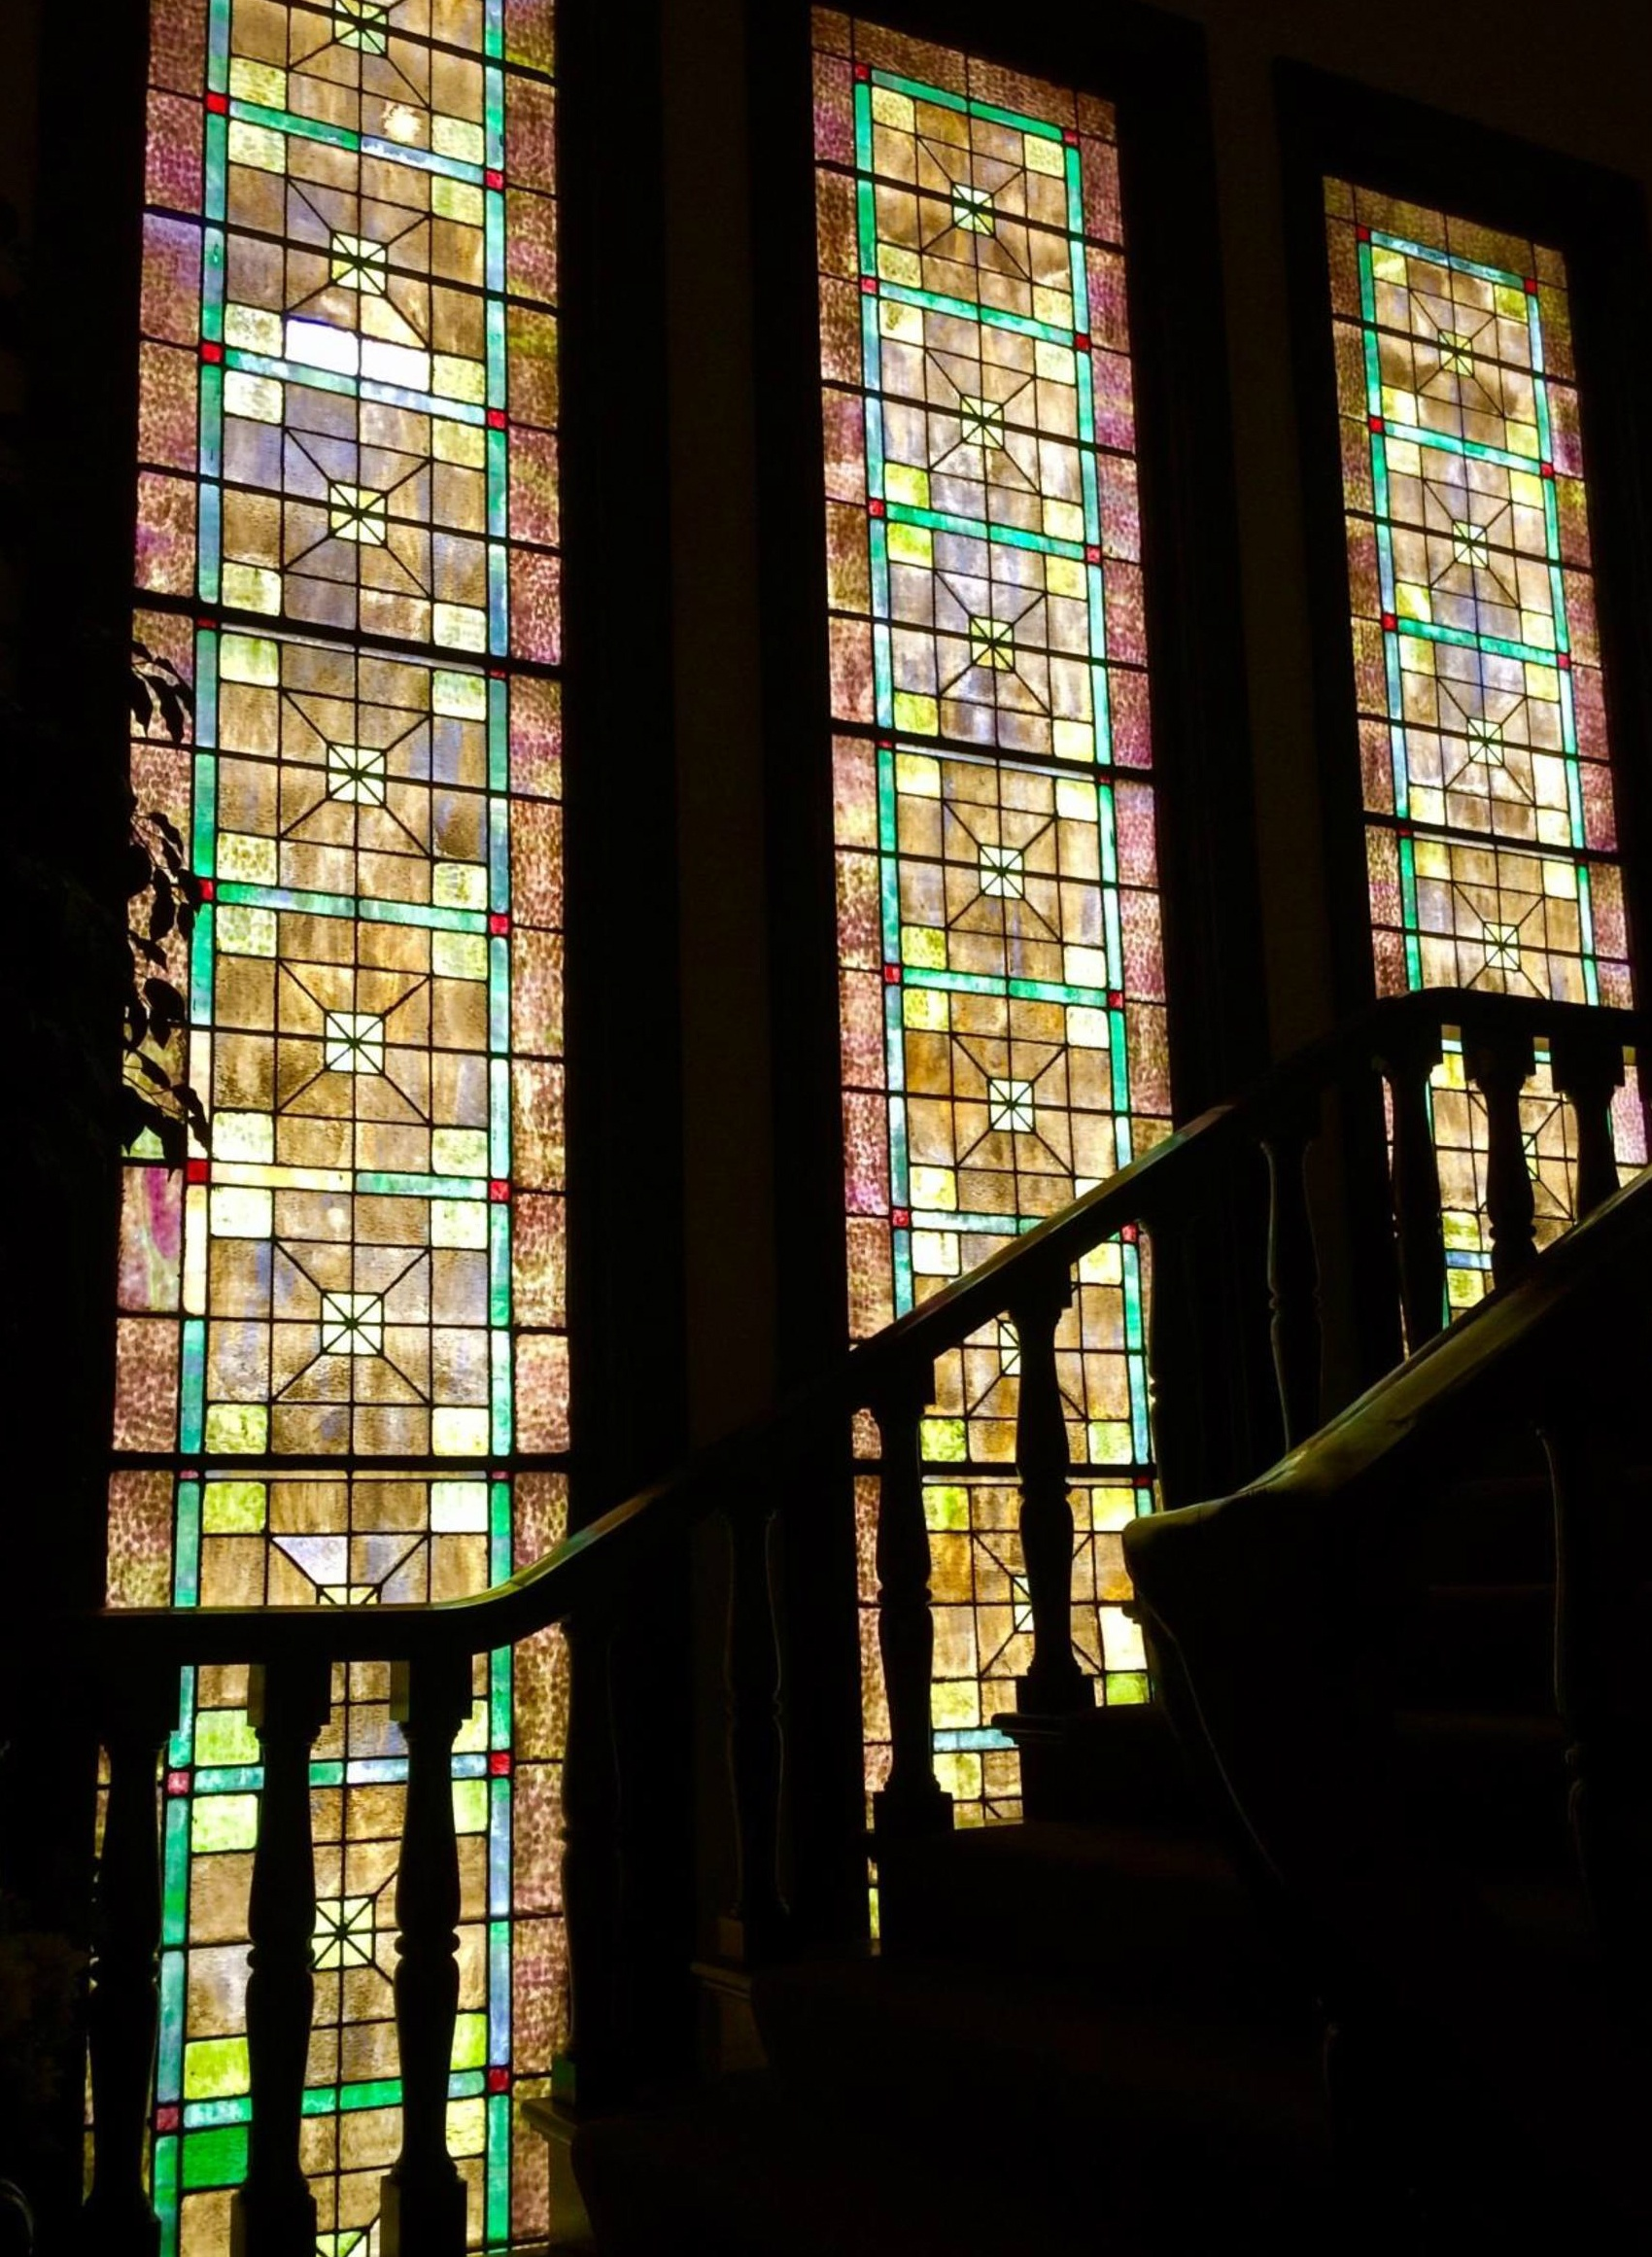 https://0201.nccdn.net/1_2/000/000/196/57a/Stained-glass-stairway-best-1700x2322.jpg